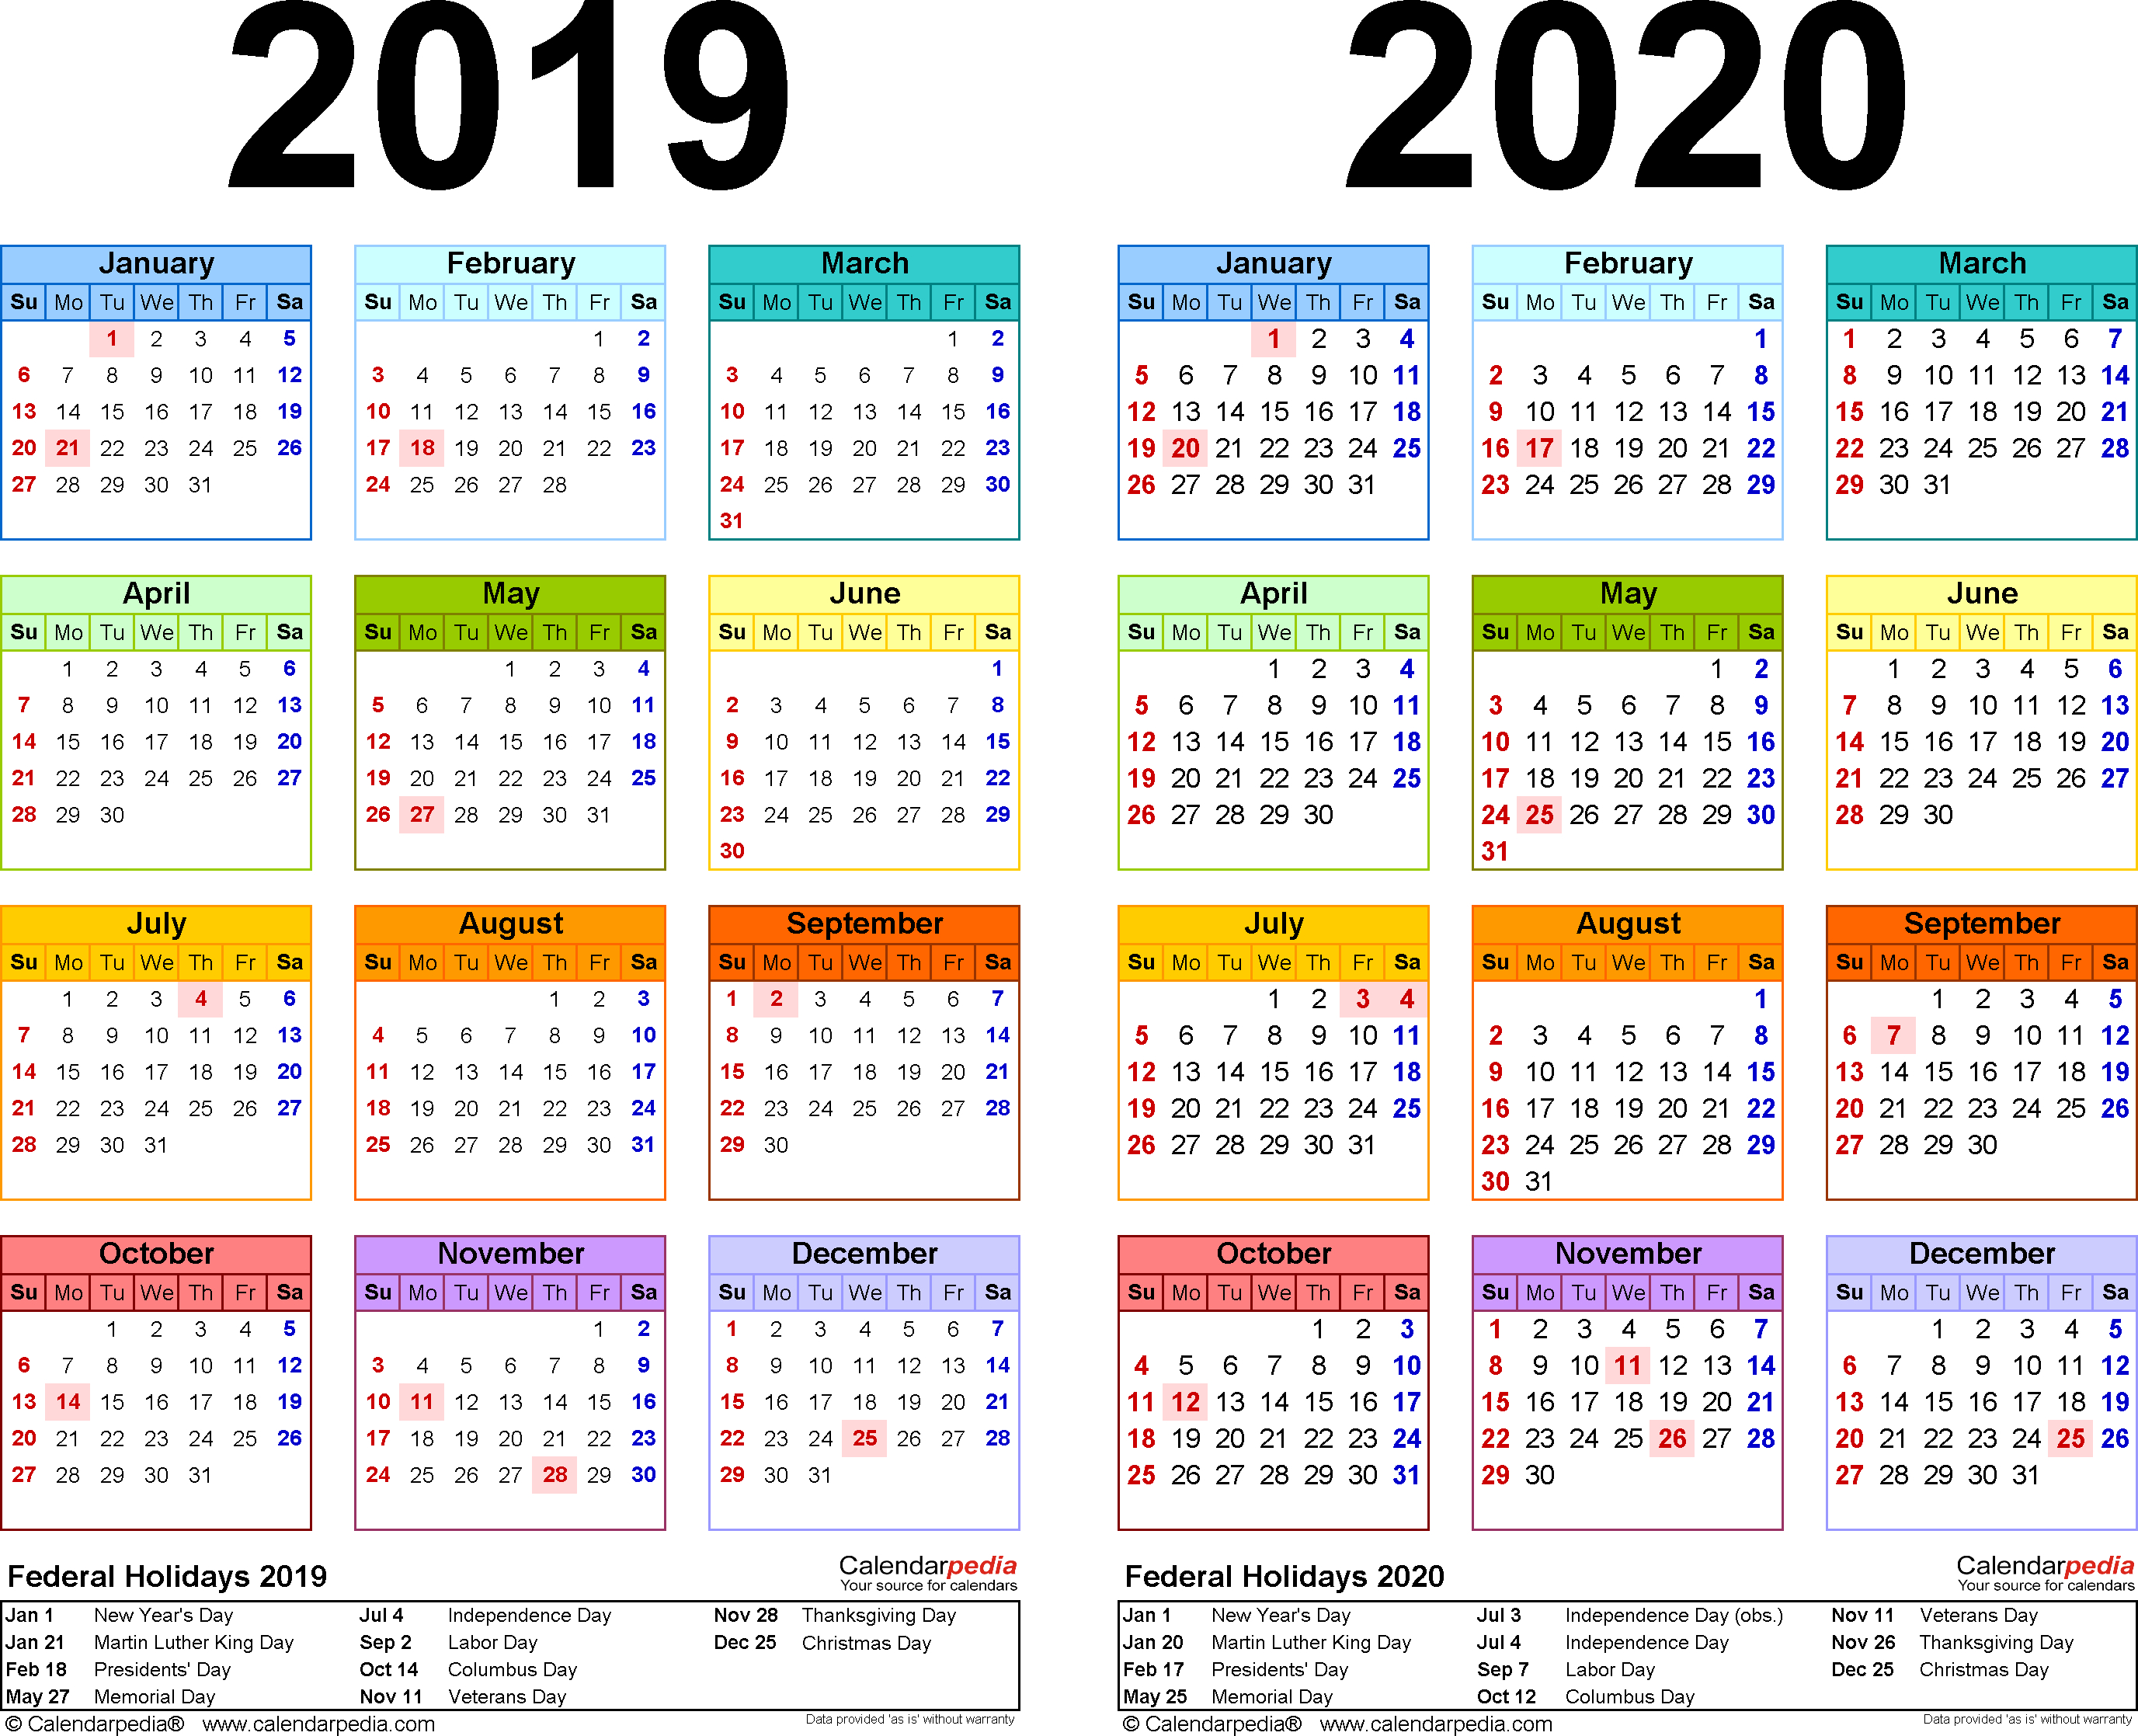 2019-2020 Calendar - Free Printable Two-Year Word Calendars